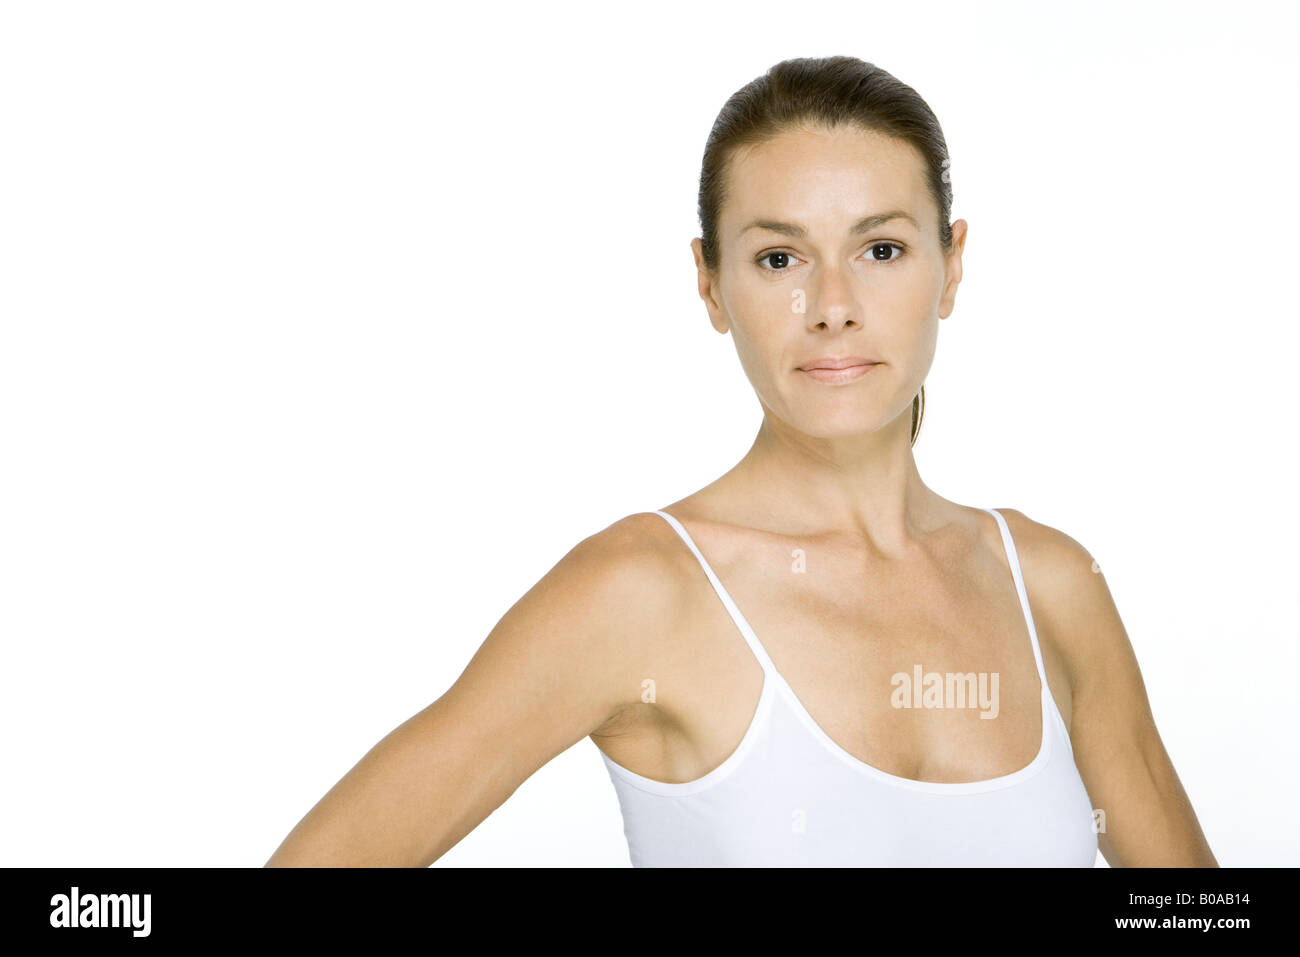 Woman in tank top looking at camera, portrait - Stock Image